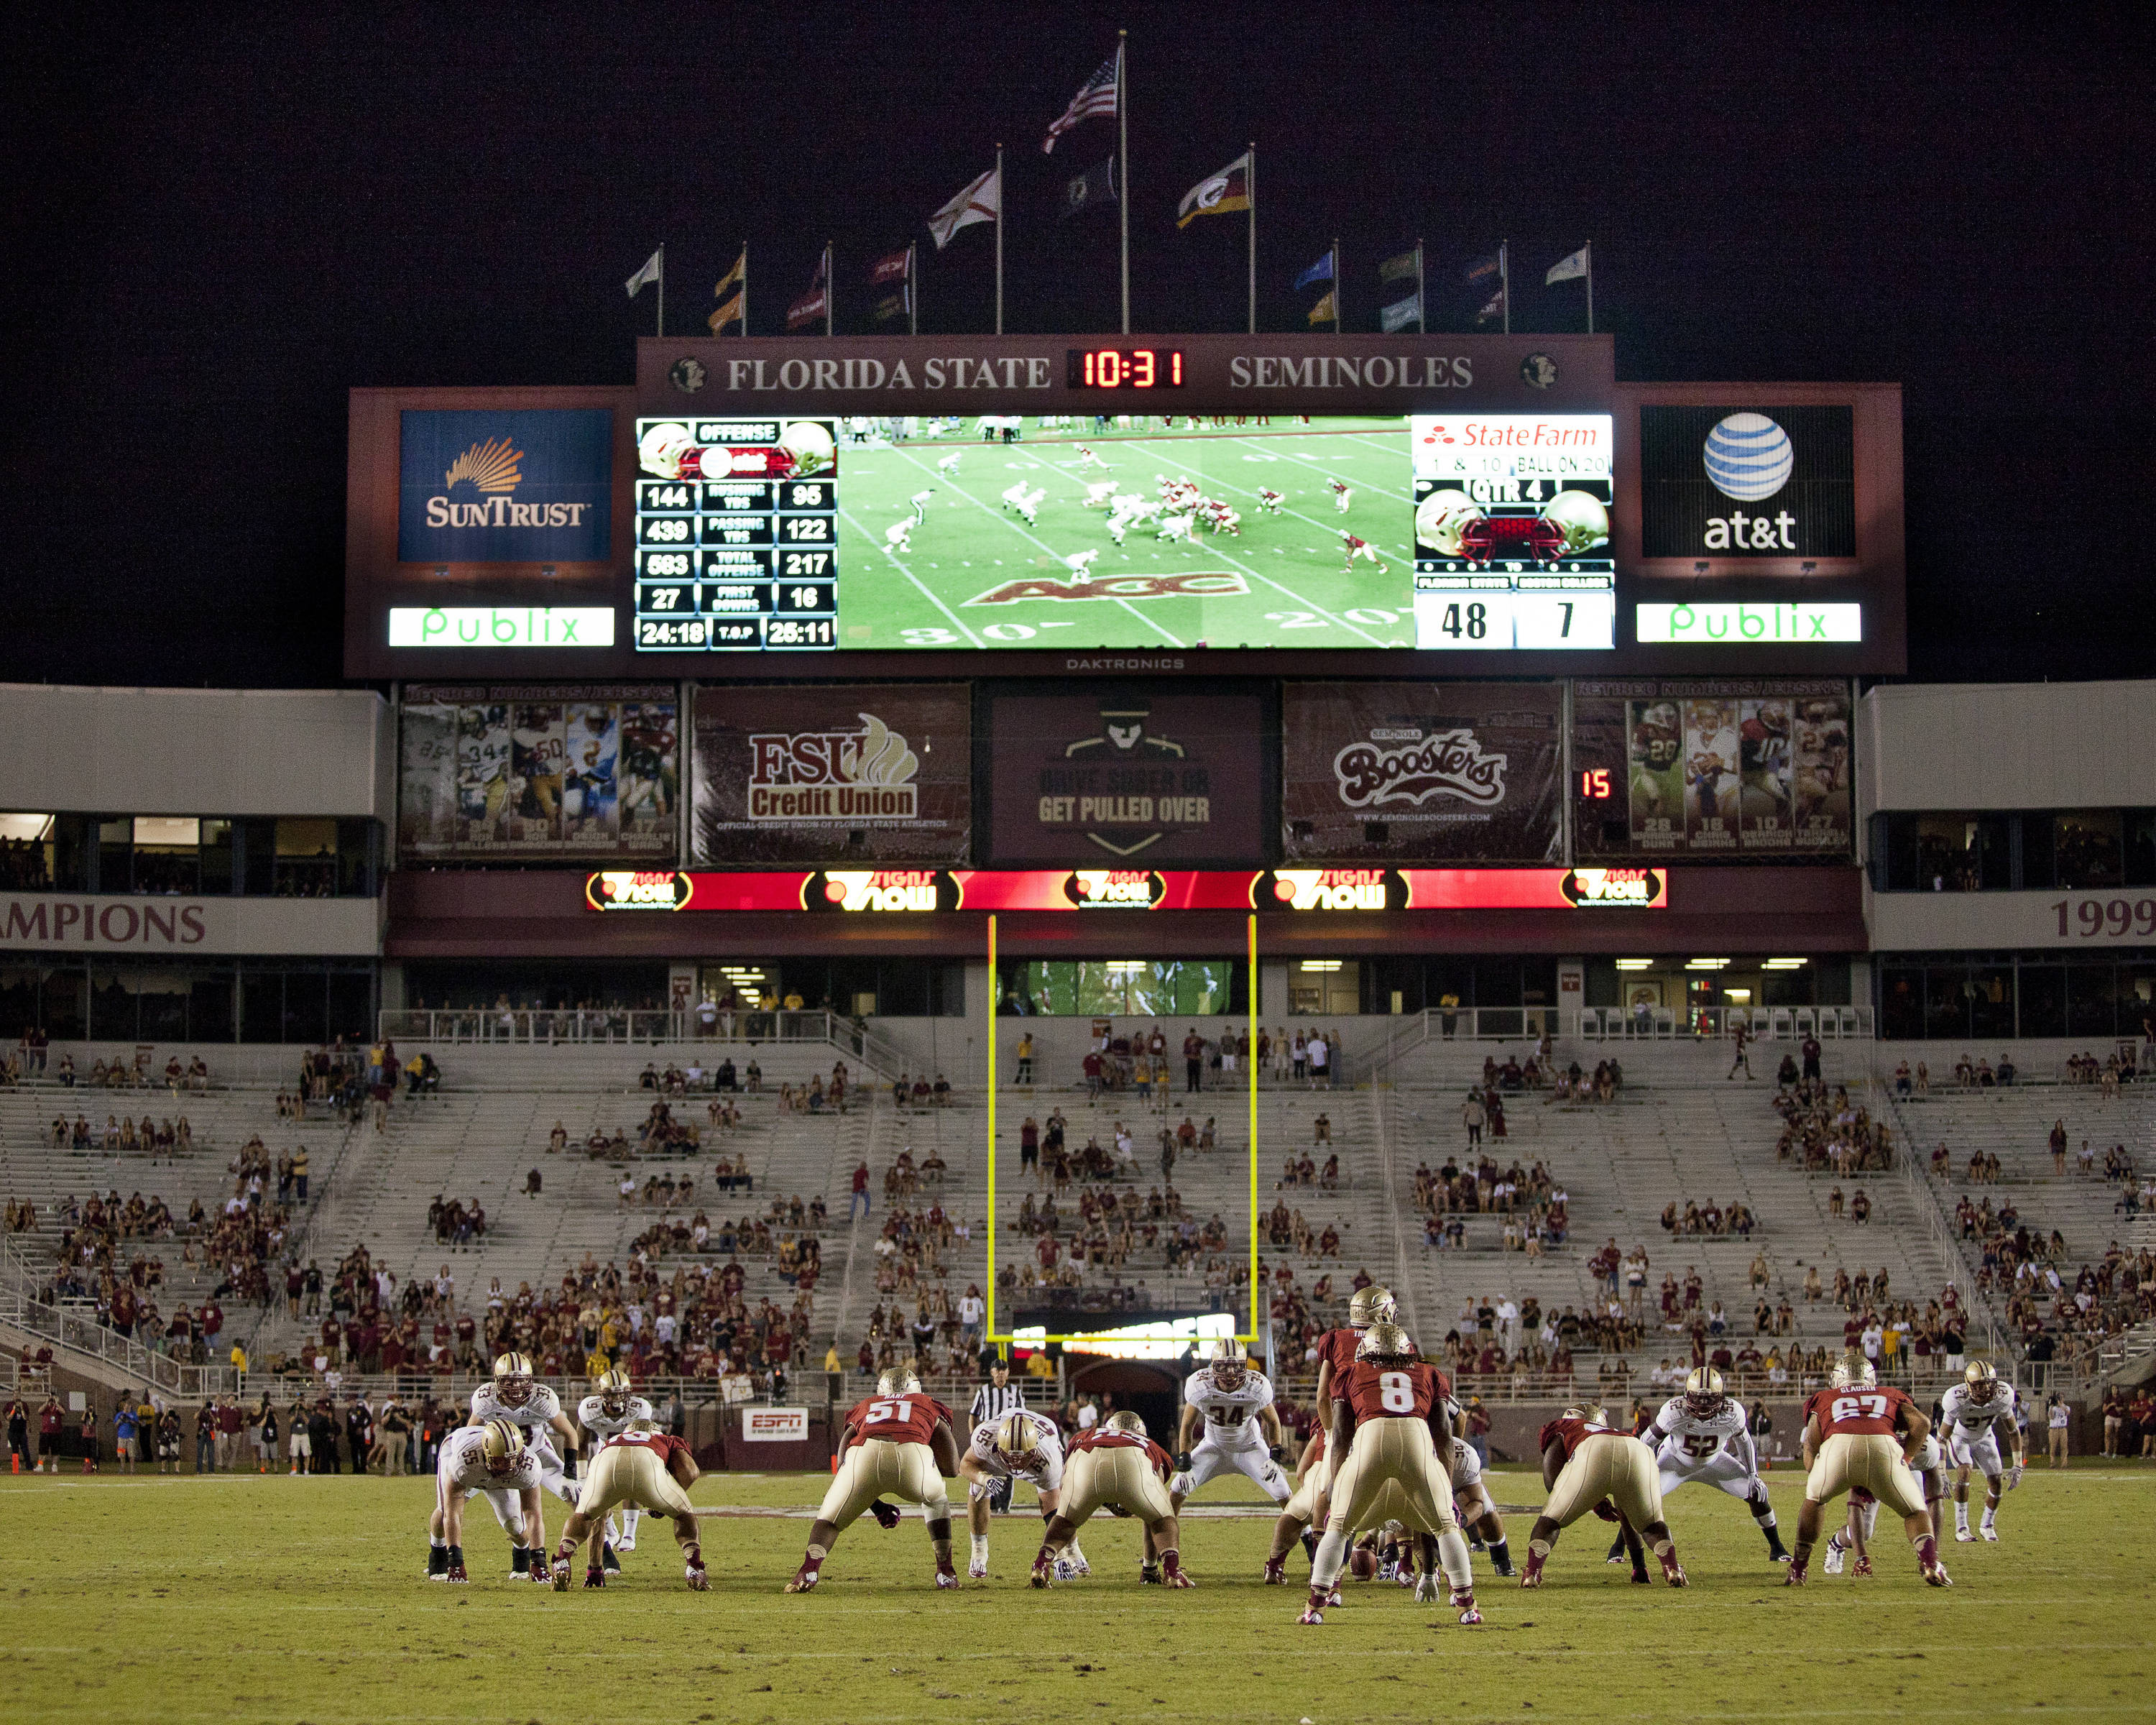 The FSU offense waits for the snap during the FSU vs Boston College football game on October 13, 2012 in Tallahassee, Fla.